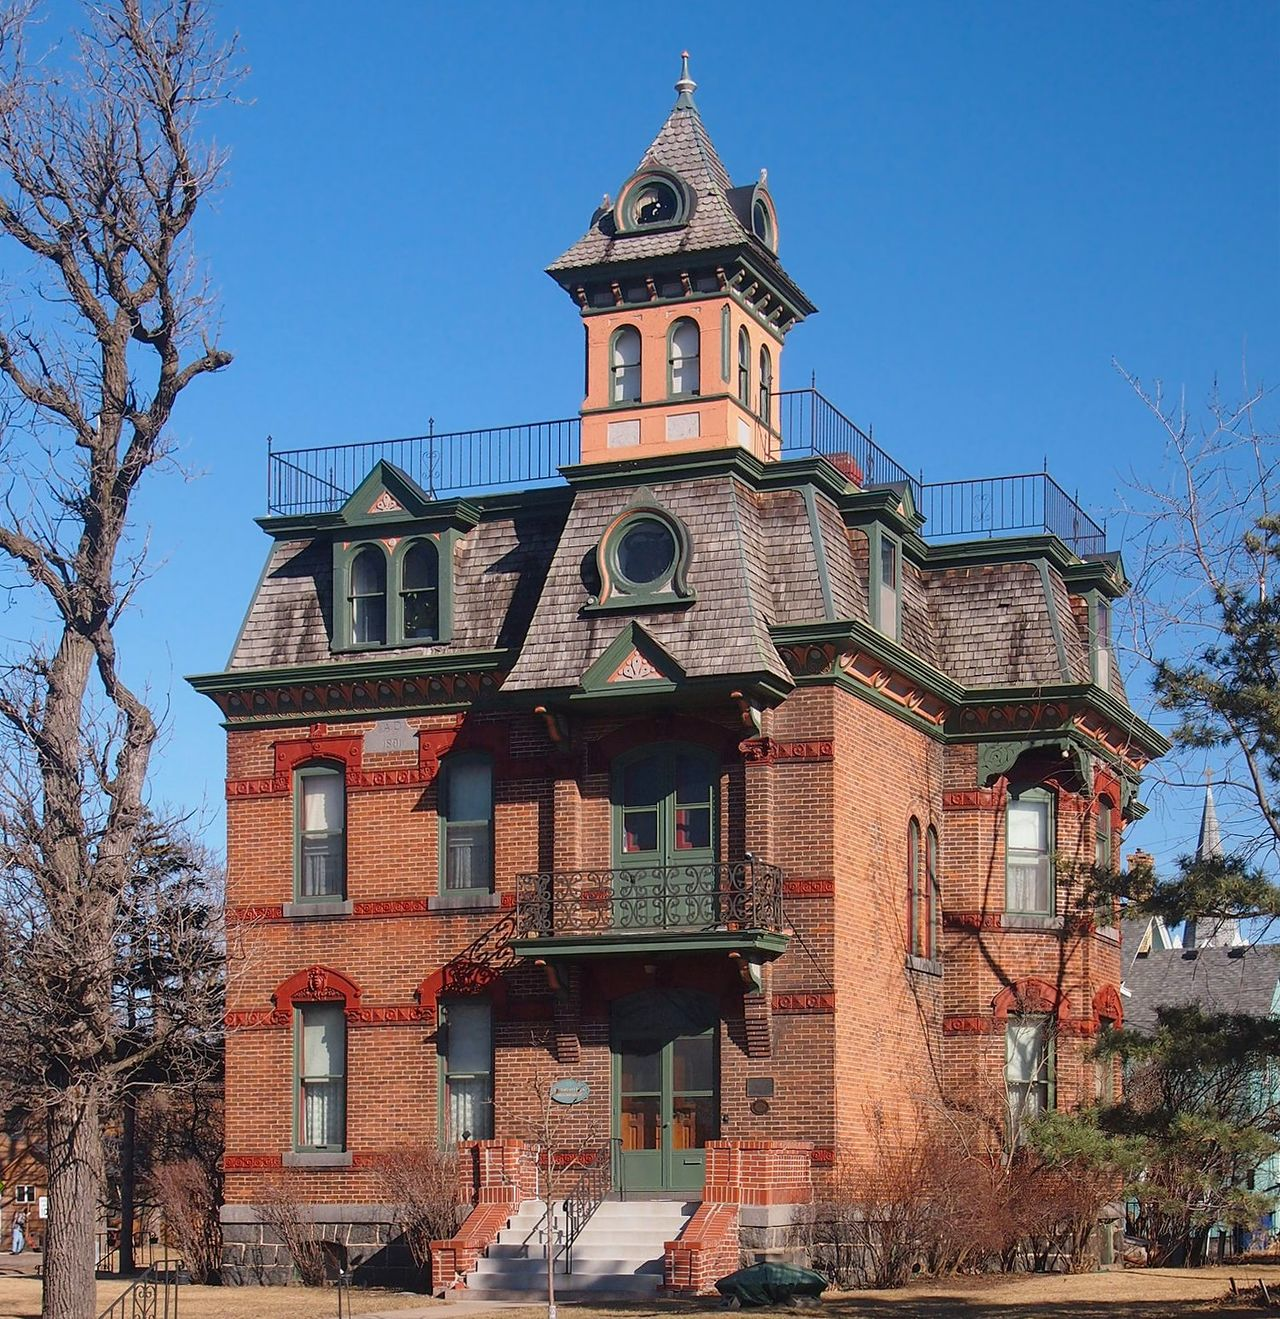 The Michael Majerus House was erected in 1891 and is the finest example of the French Second Empire style in St. Cloud.